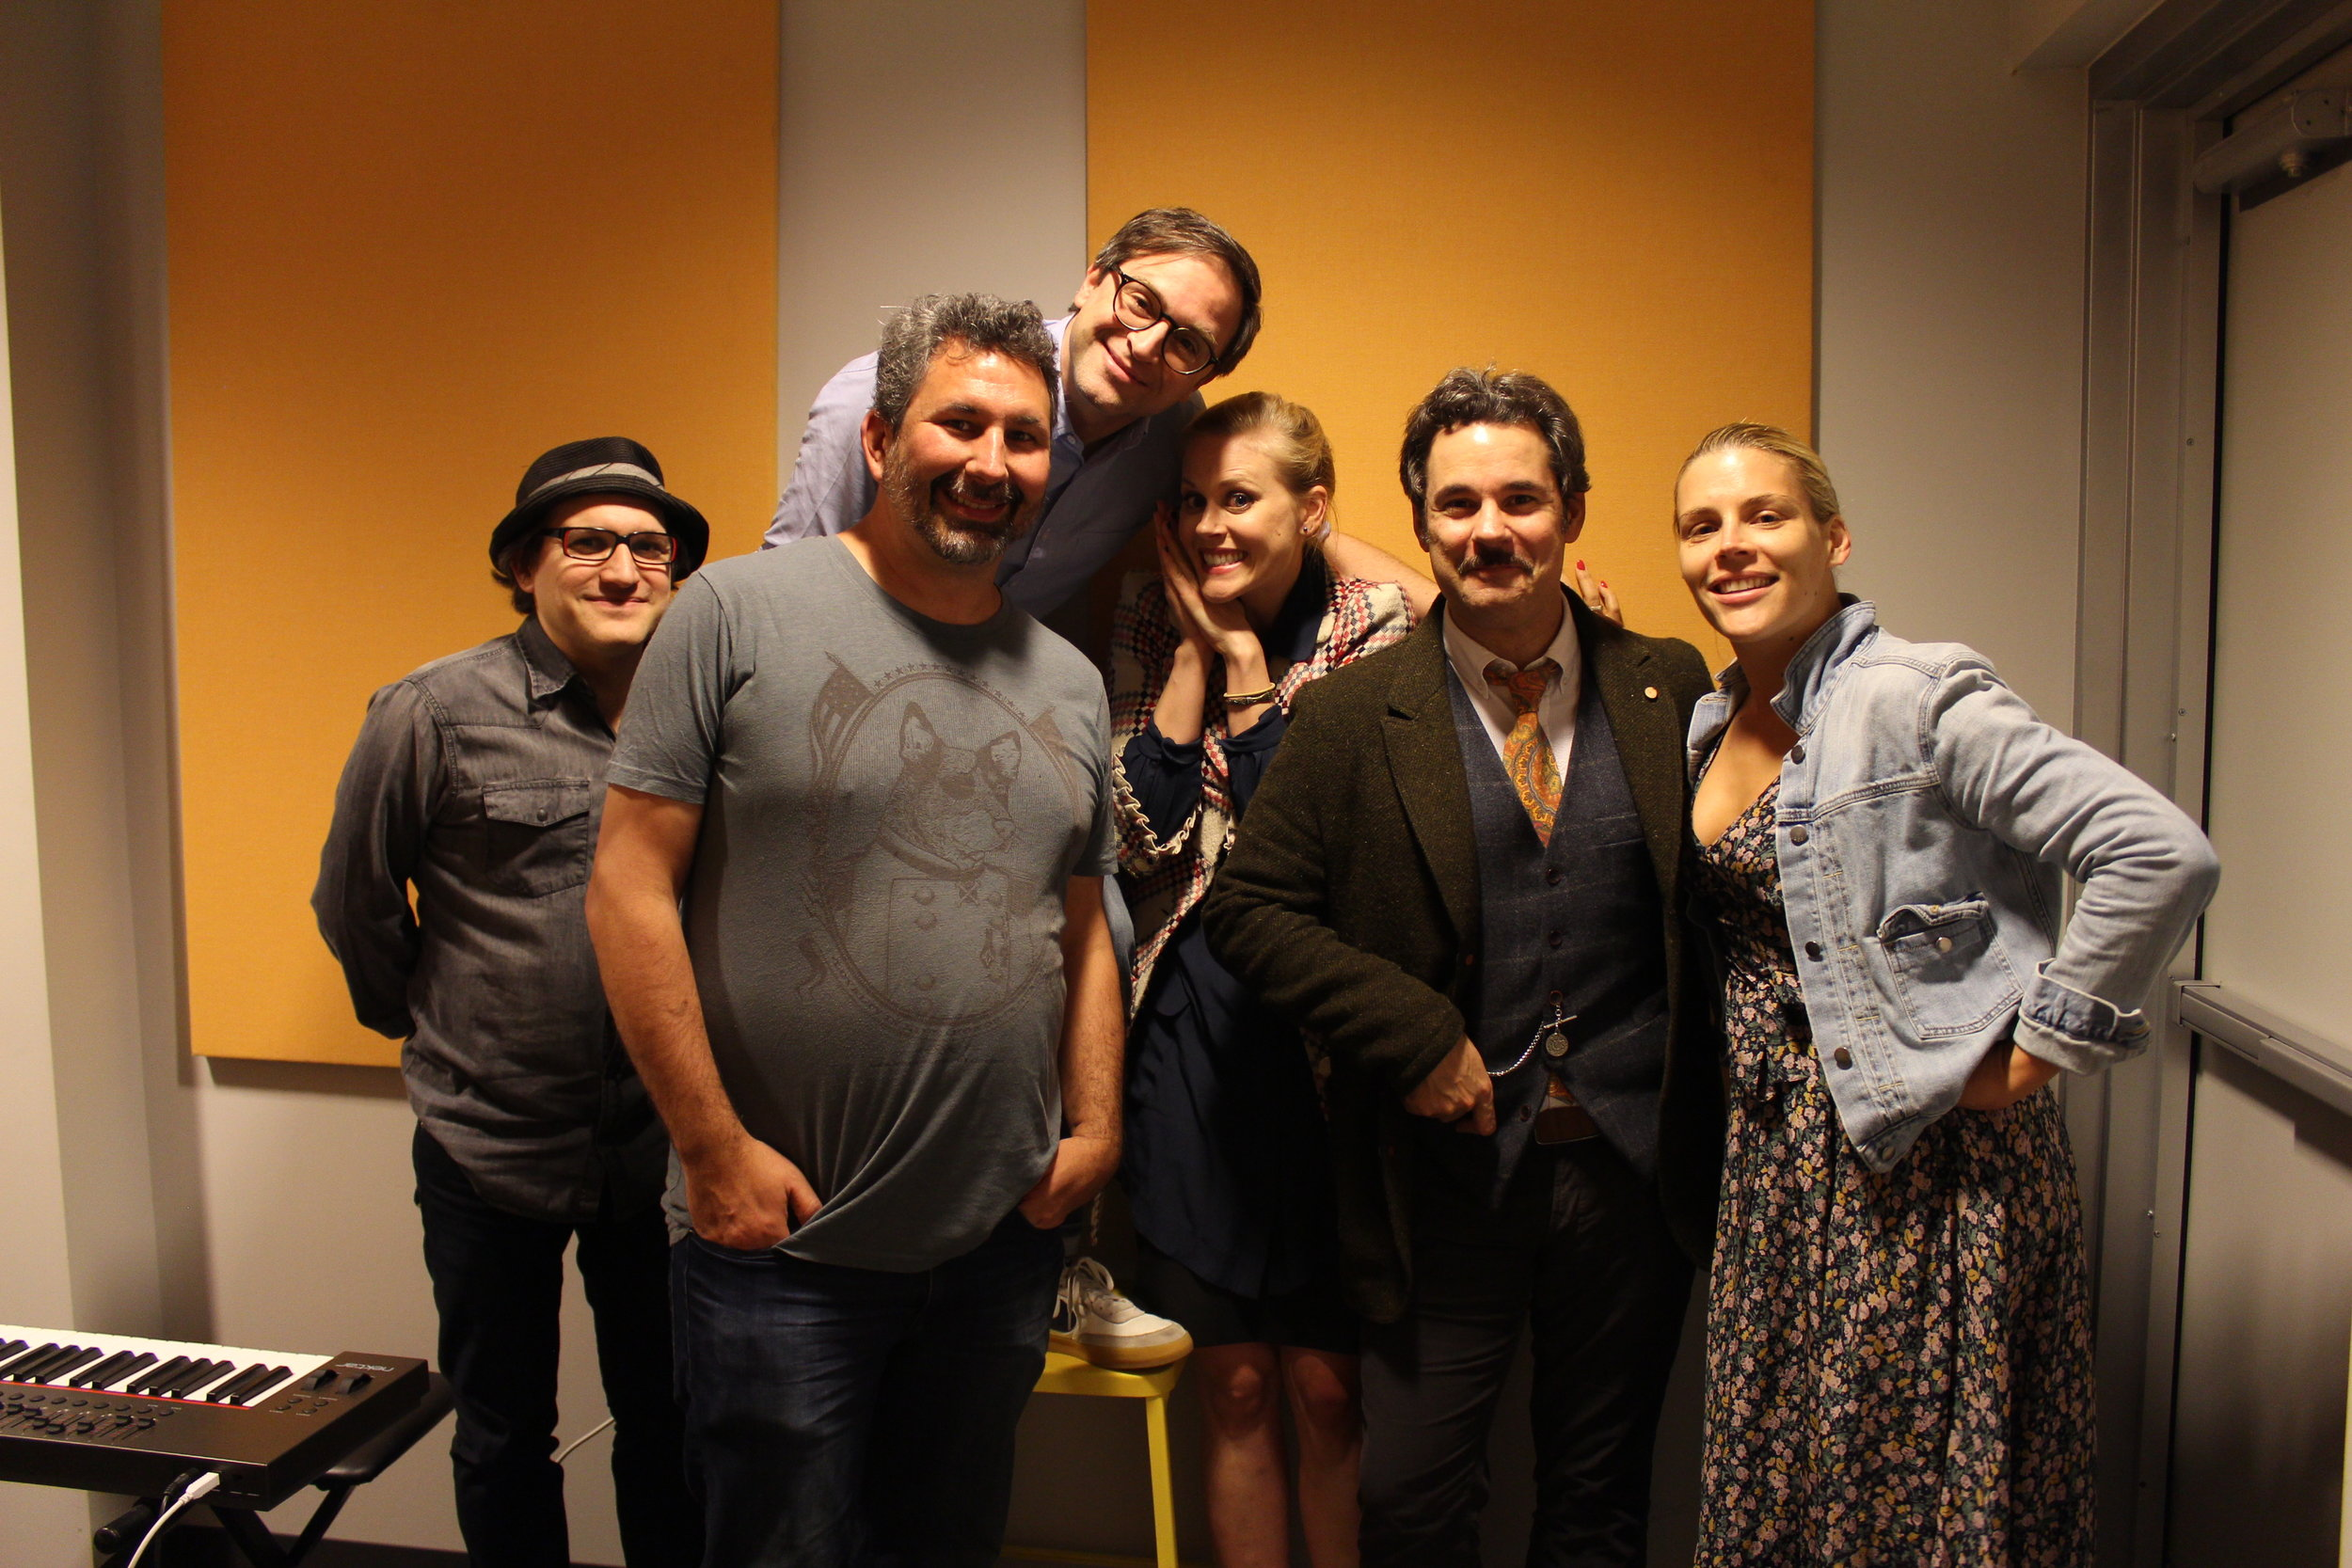 Spontaneanation with Paul F. Tompkins#1 A Denny's Parking Lot(April 1st, 2015) - Welcome all in podcasting land to Spontaneanation with Paul F. Tompkins! Paul chats with his special guest Busy Philipps (Cougar Town, Thrilling Adventure Hour) about her favorite snack as a latchkey kid in Arizona. Then, special guests Craig Cackowski, Matt Gourley and Janet Varney join Paul to improvise a narrative inspired by Paul & Busy's chat set in a Denny's Parking Lot with the great Eban Schletter on piano. There will be love, suspense, and people who live in dumpsters!